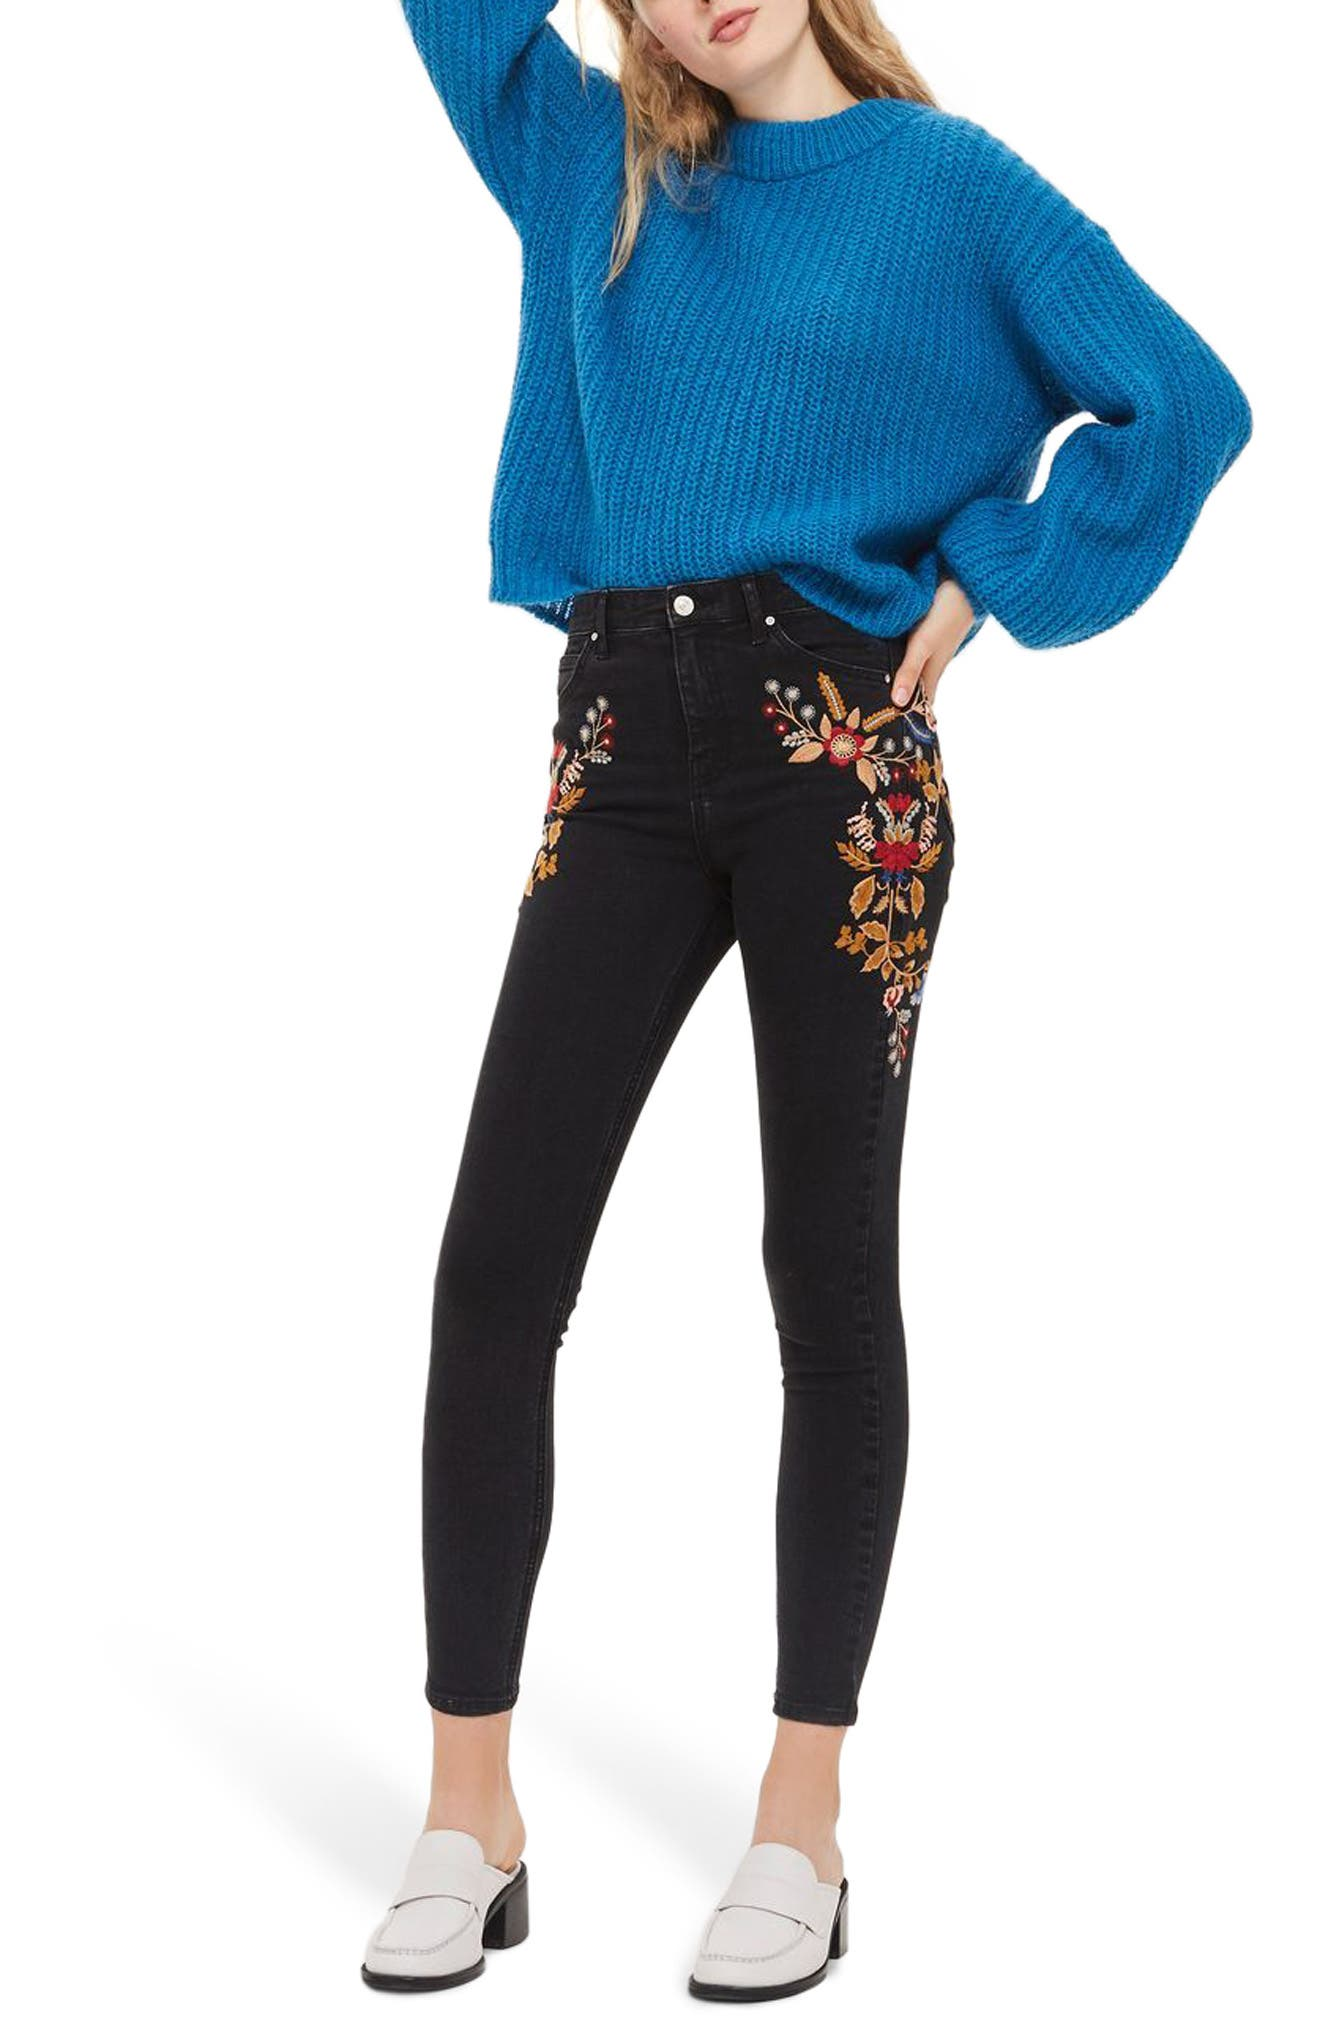 Alternate Image 1 Selected - Topshop Jamie Embroidered High Waist Skinny Jeans